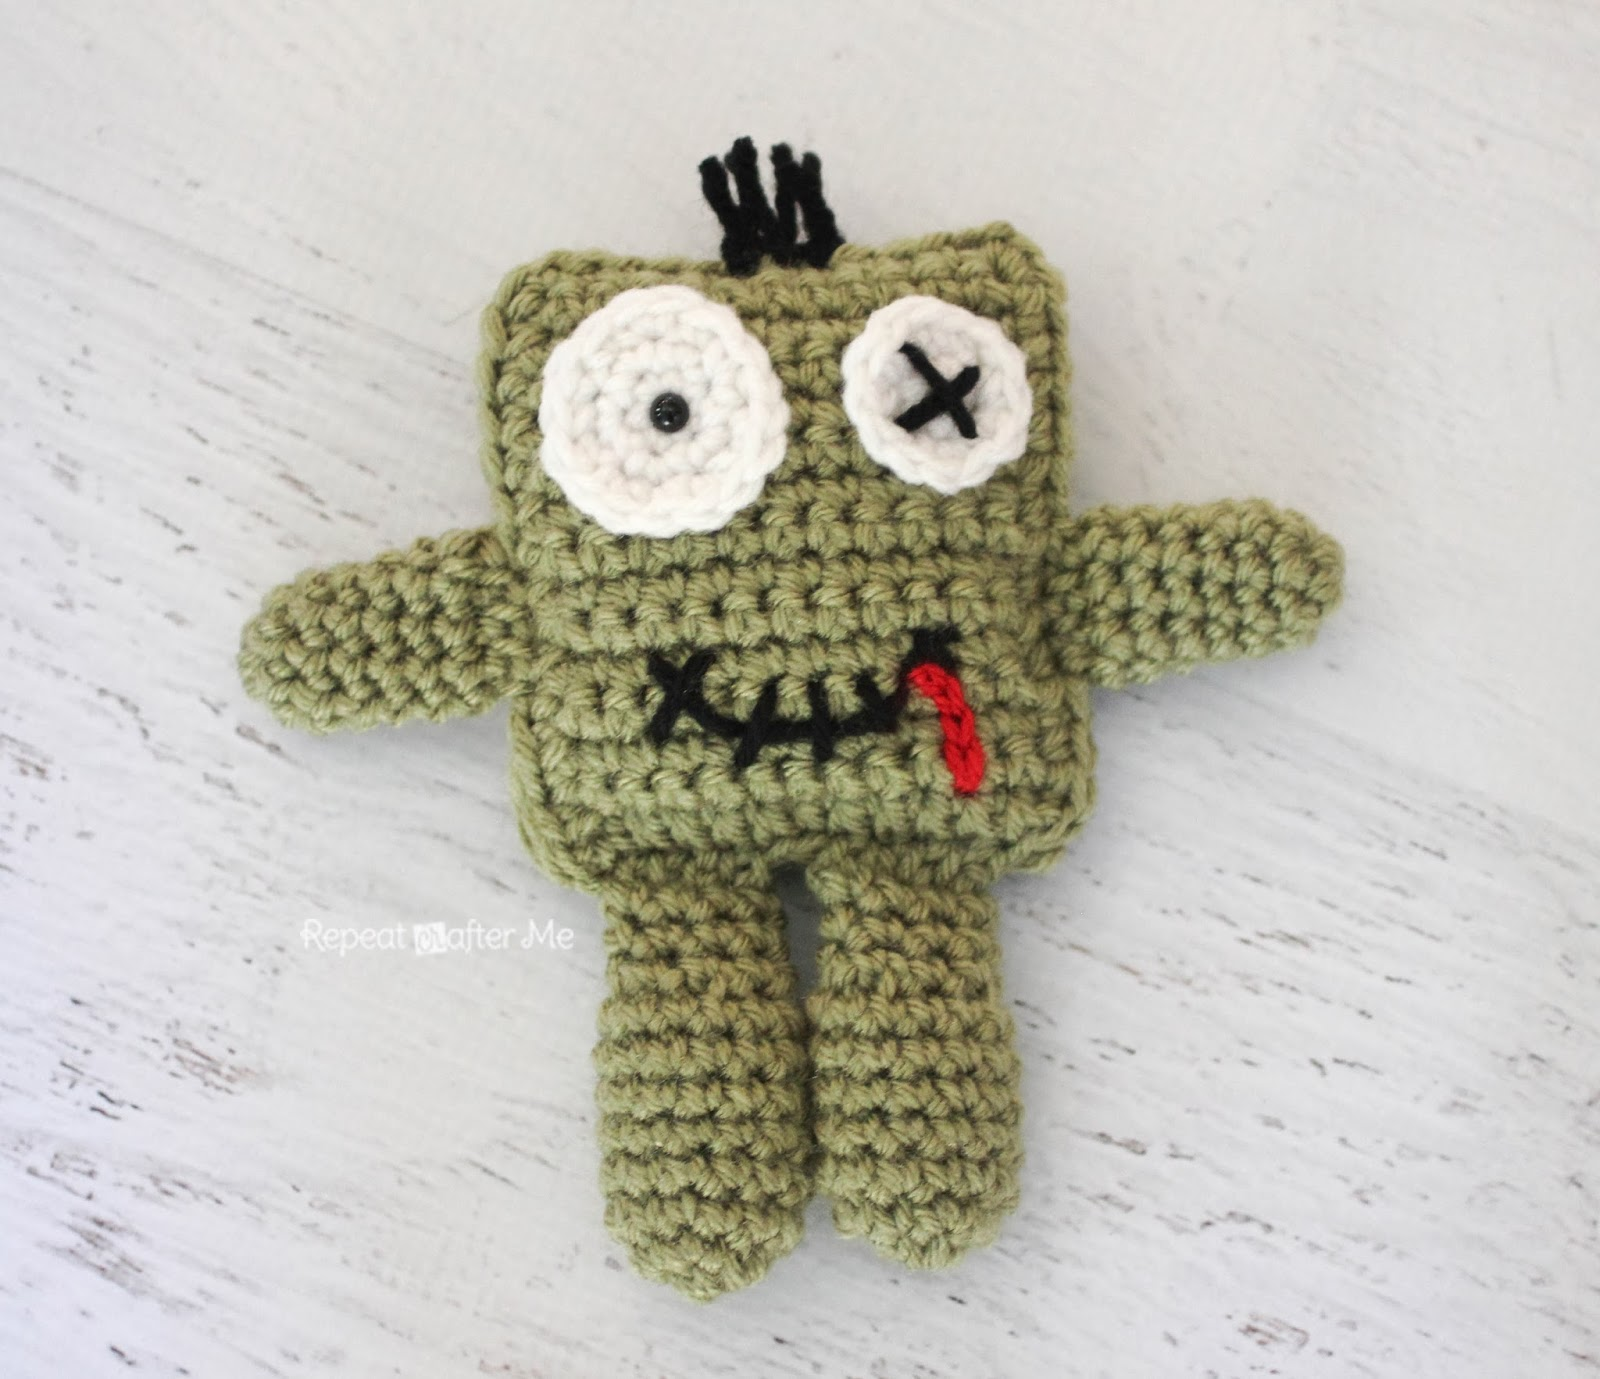 Repeat Crafter Me: Friendly Crochet Zombie Doll